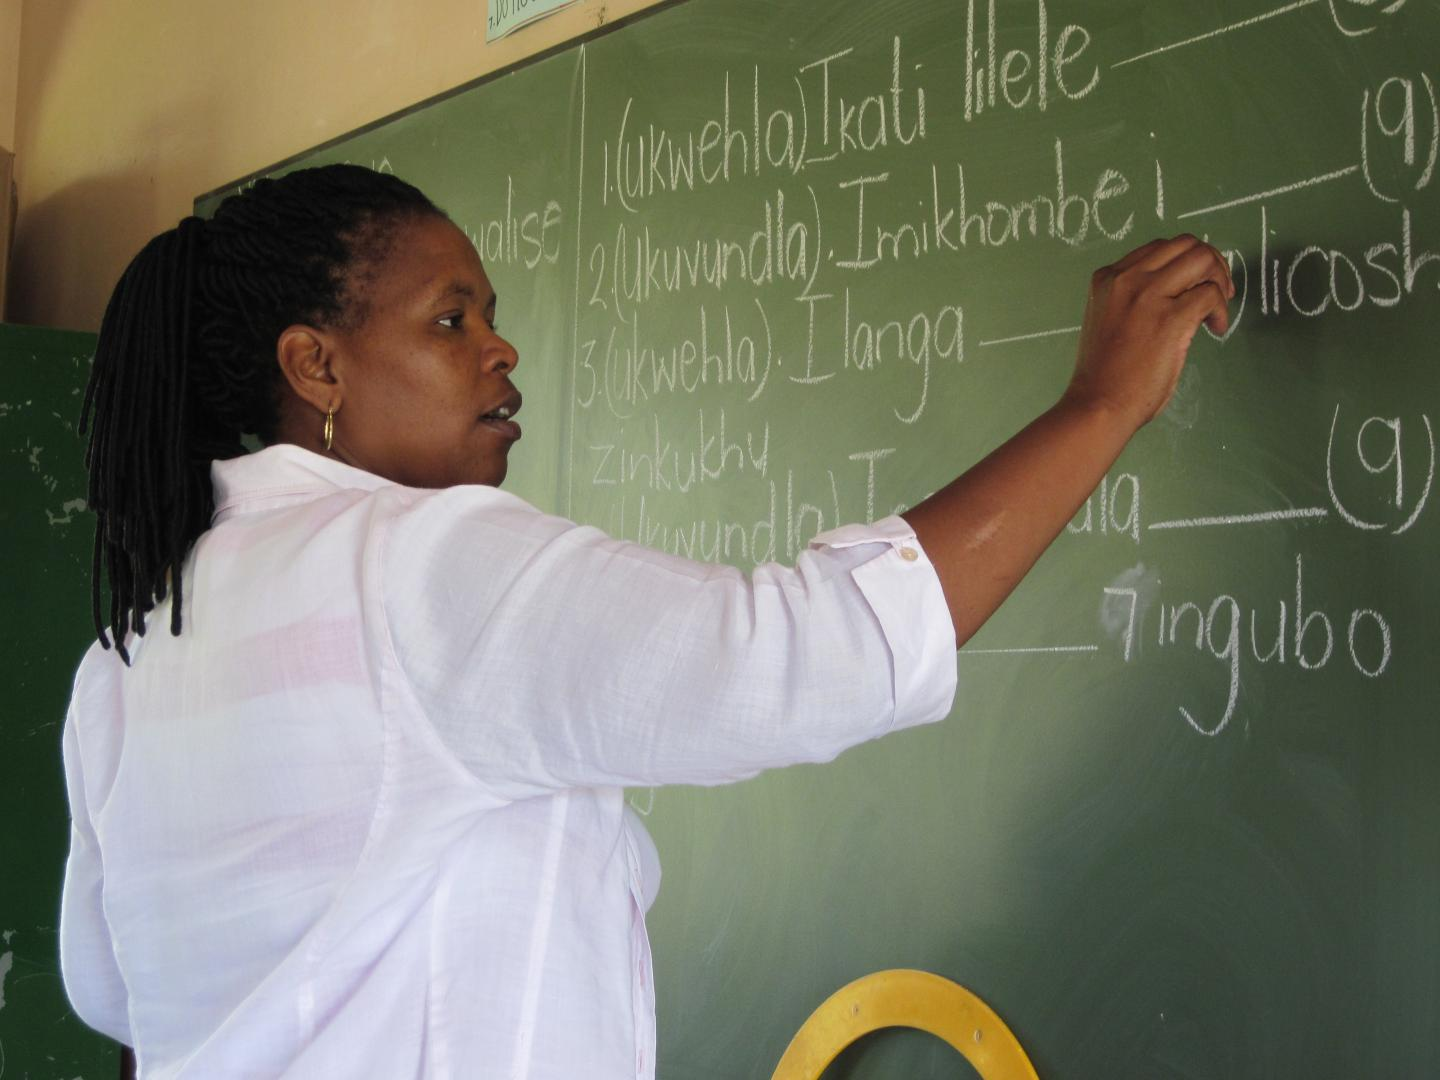 Child's View – Ms. Zondi, a teacher, writes on the chalkboard during a seventh grade Zulu language class